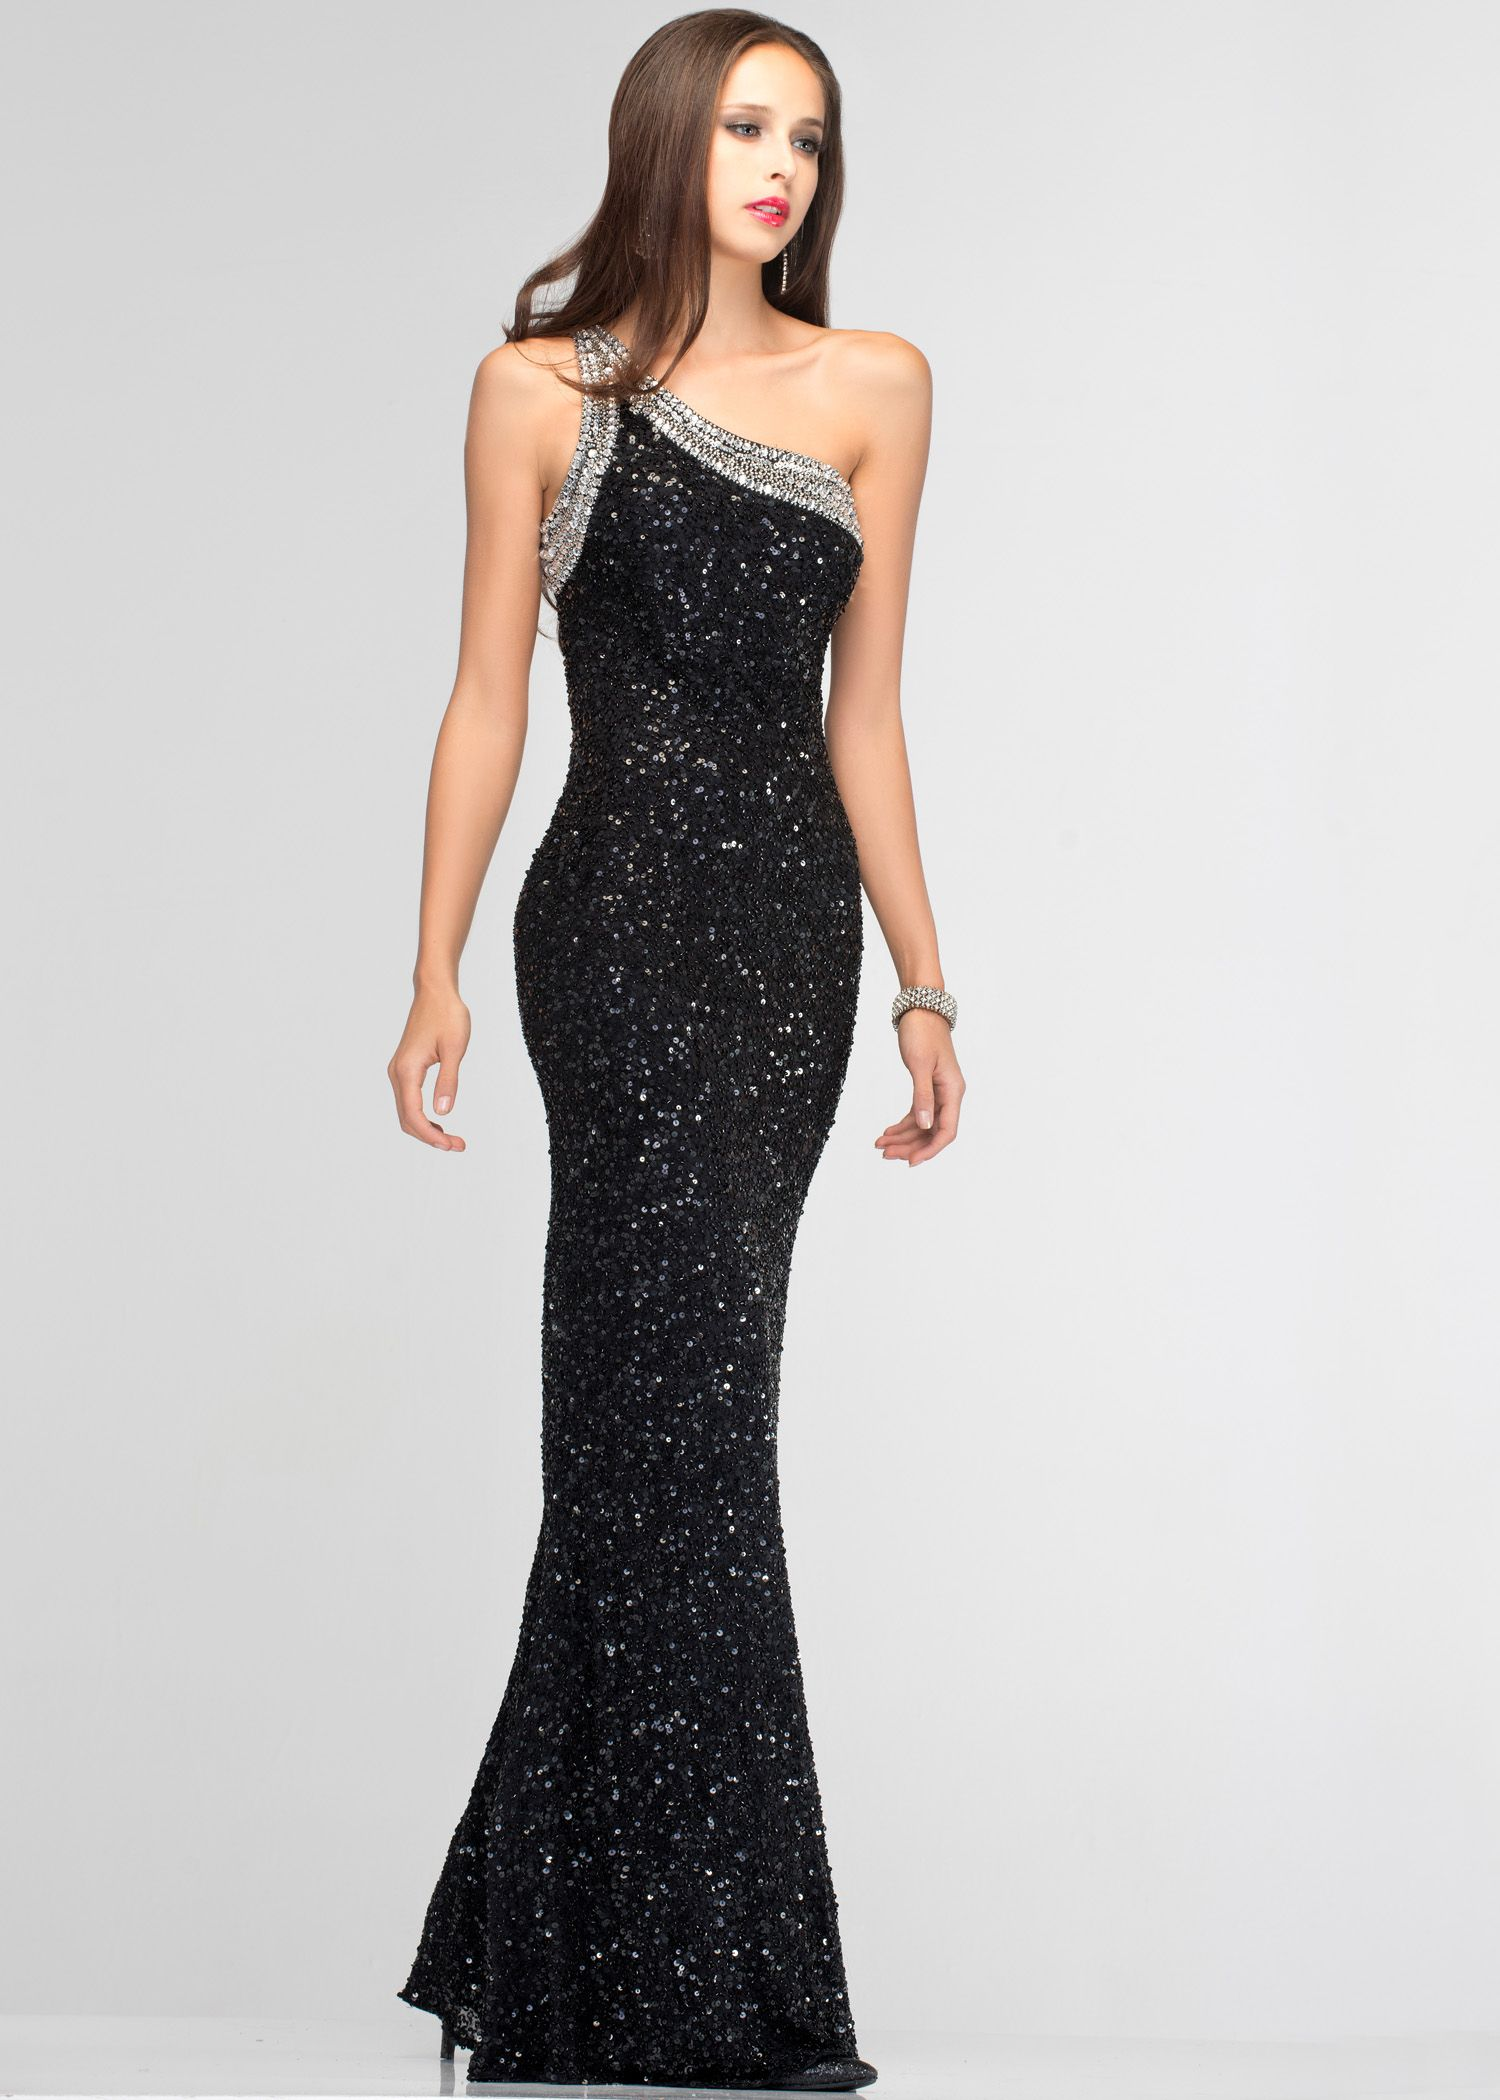 1000  images about Gowns for Mardi Gras Ball on Pinterest - Blue ...